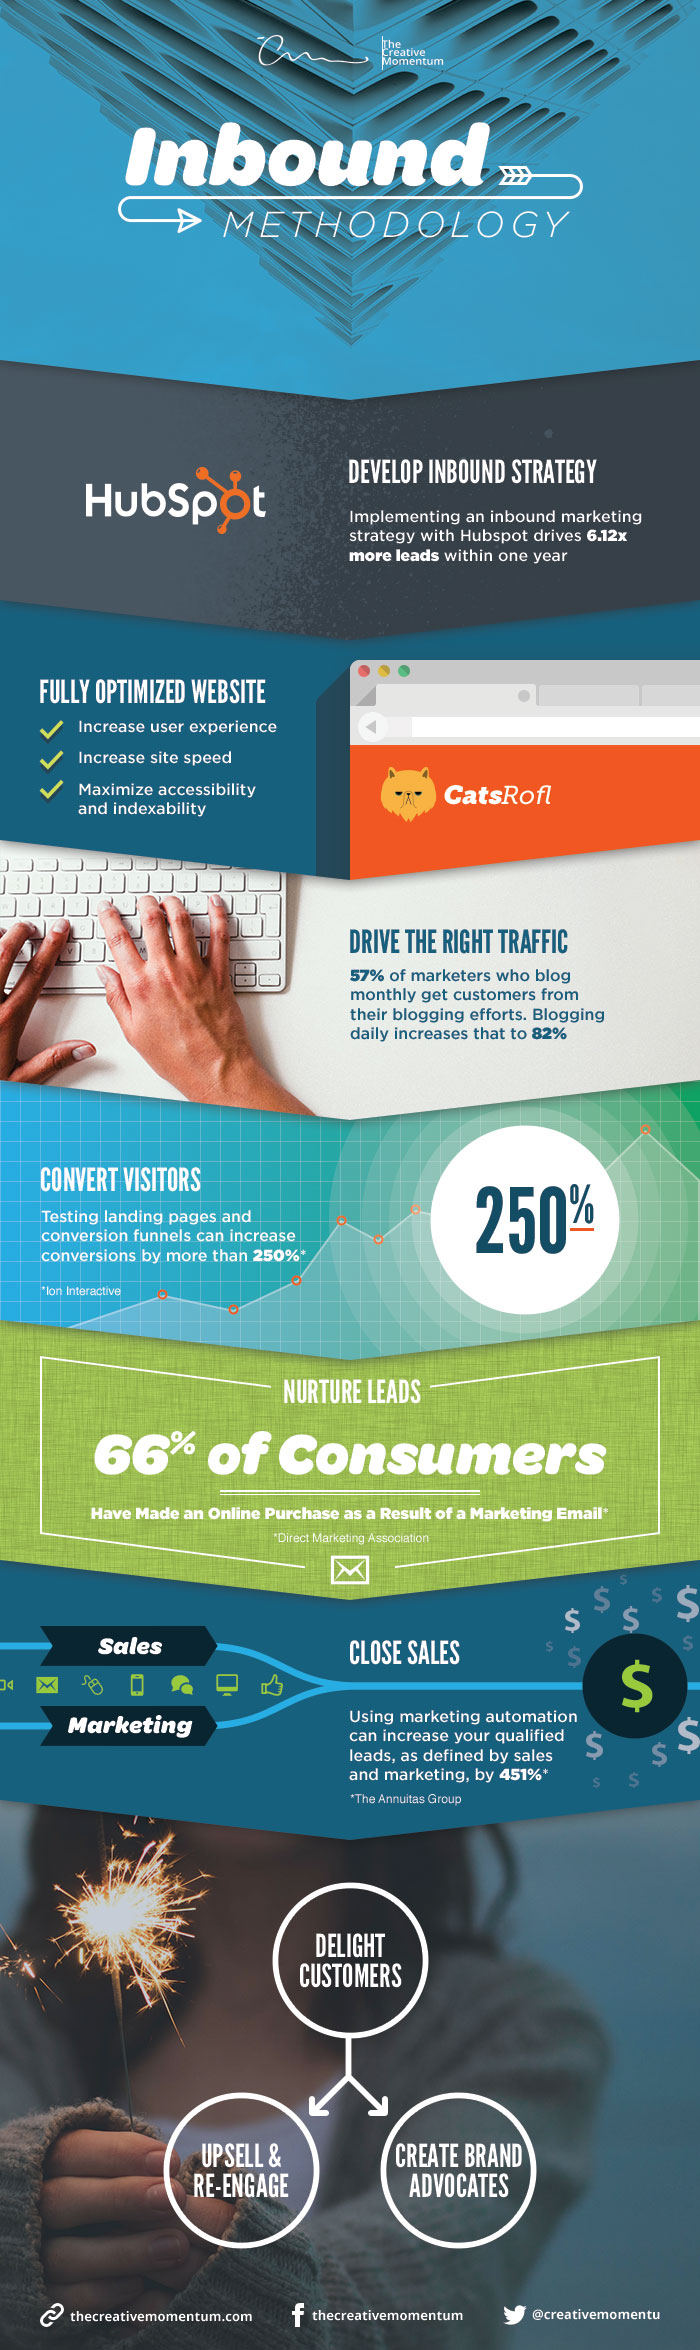 what-is-inbound-marketing-methodology-infographic.jpg